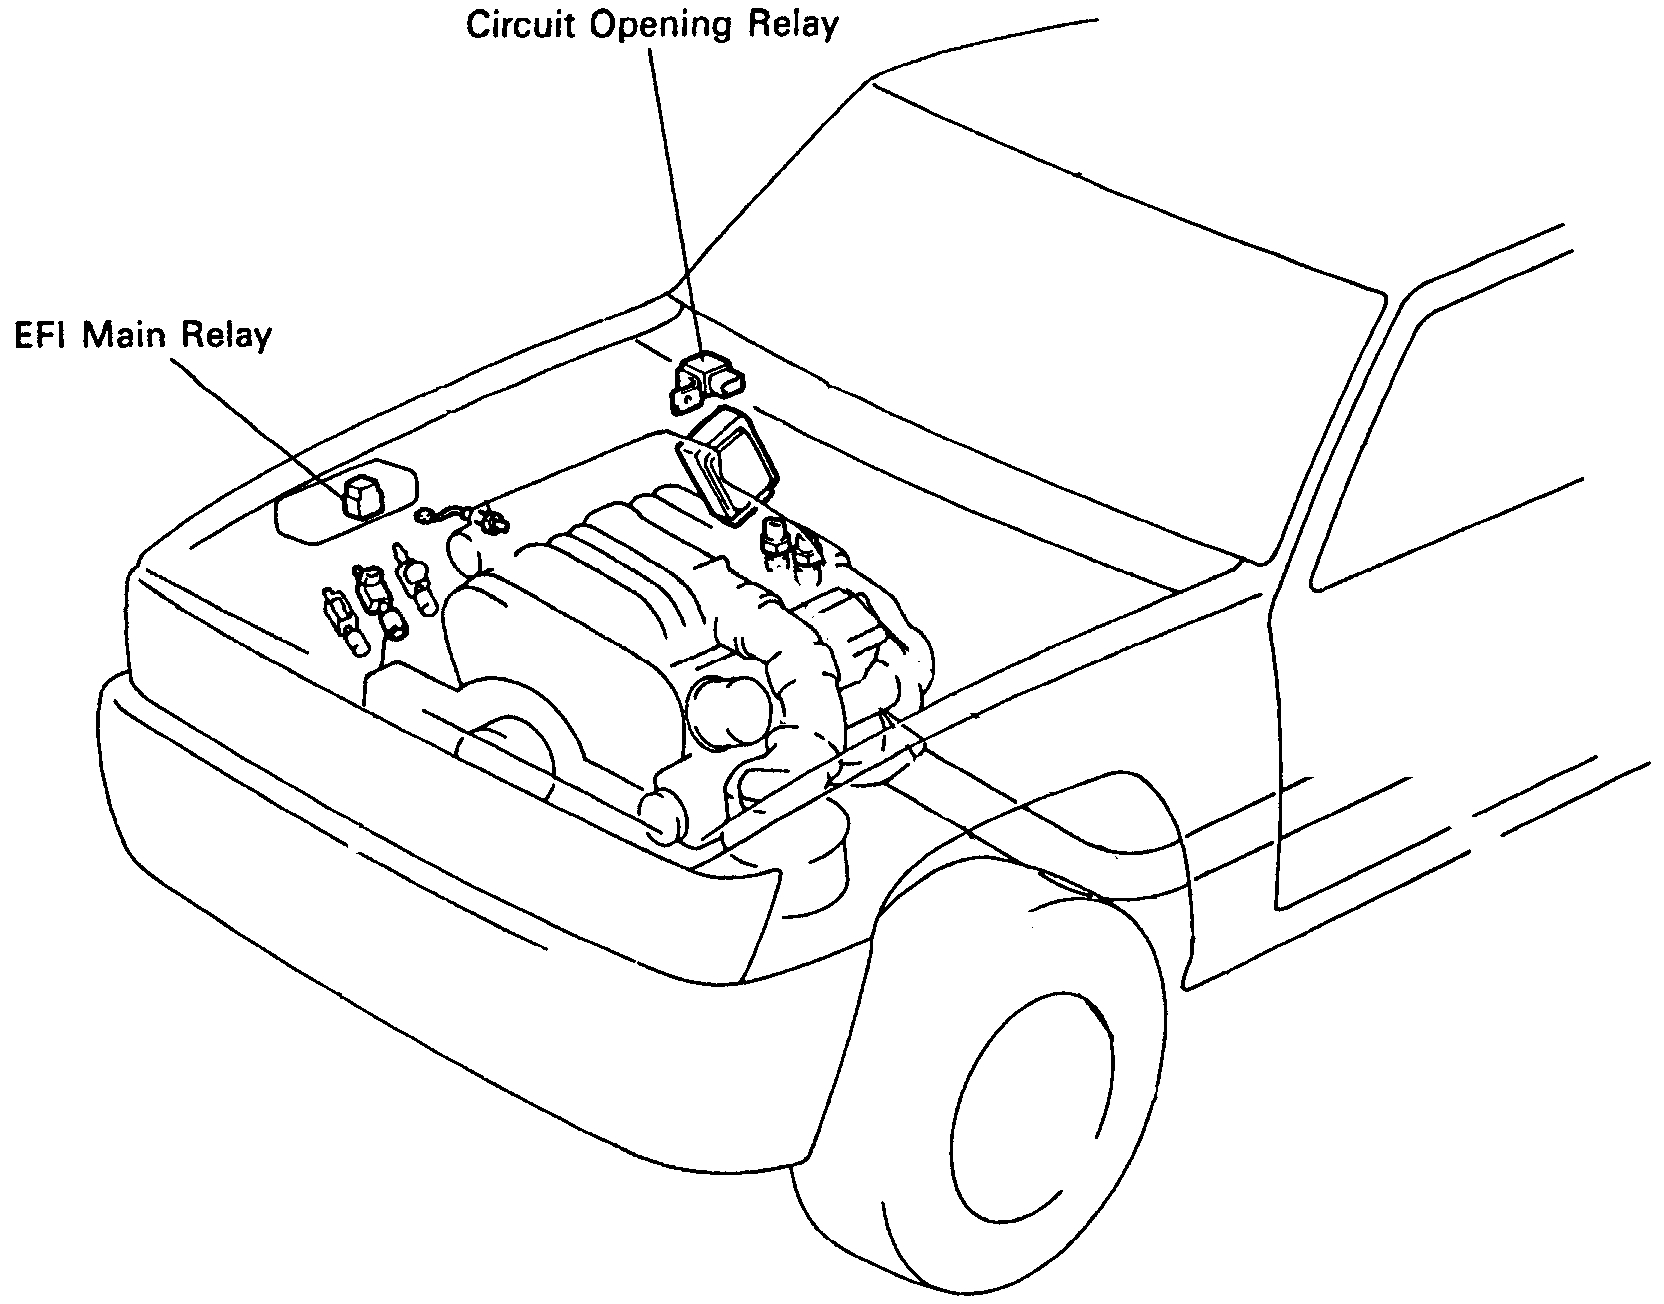 Fuel Pump Relay: Does This Pickup Have a Fuel Pump Relay